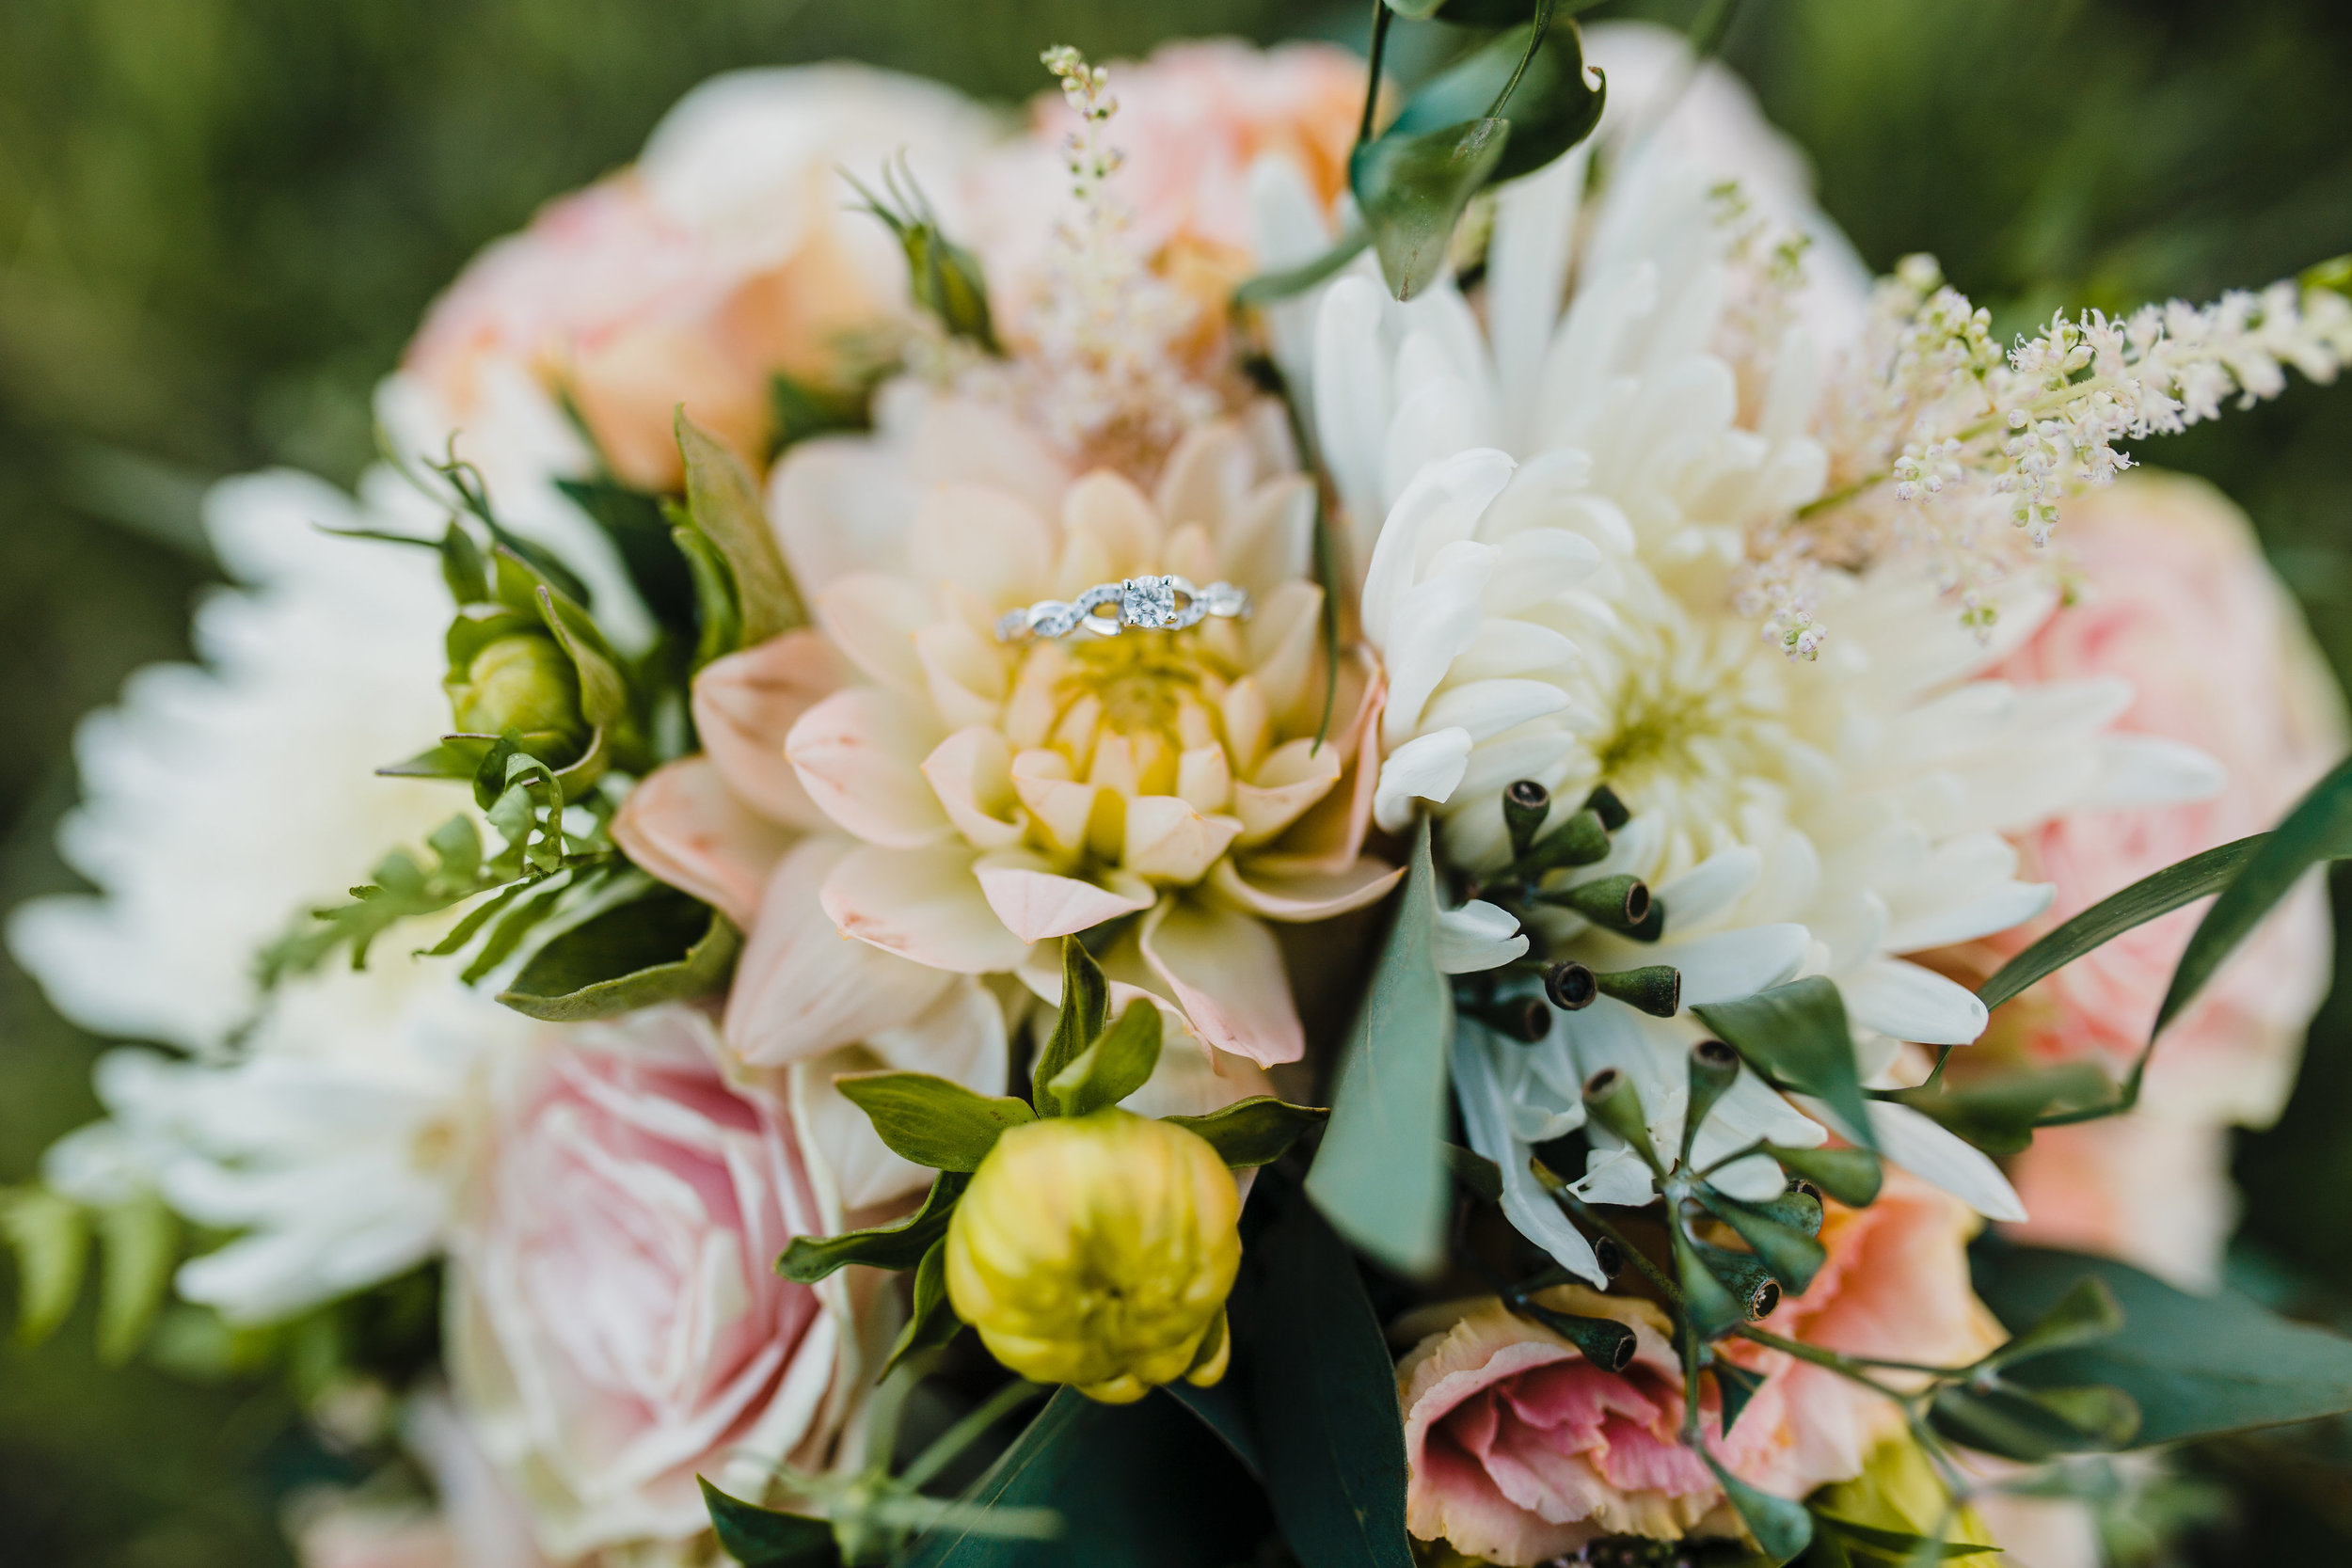 wedding day florals bouquet shot arvada colorado wedding photographer professional photos available for travel